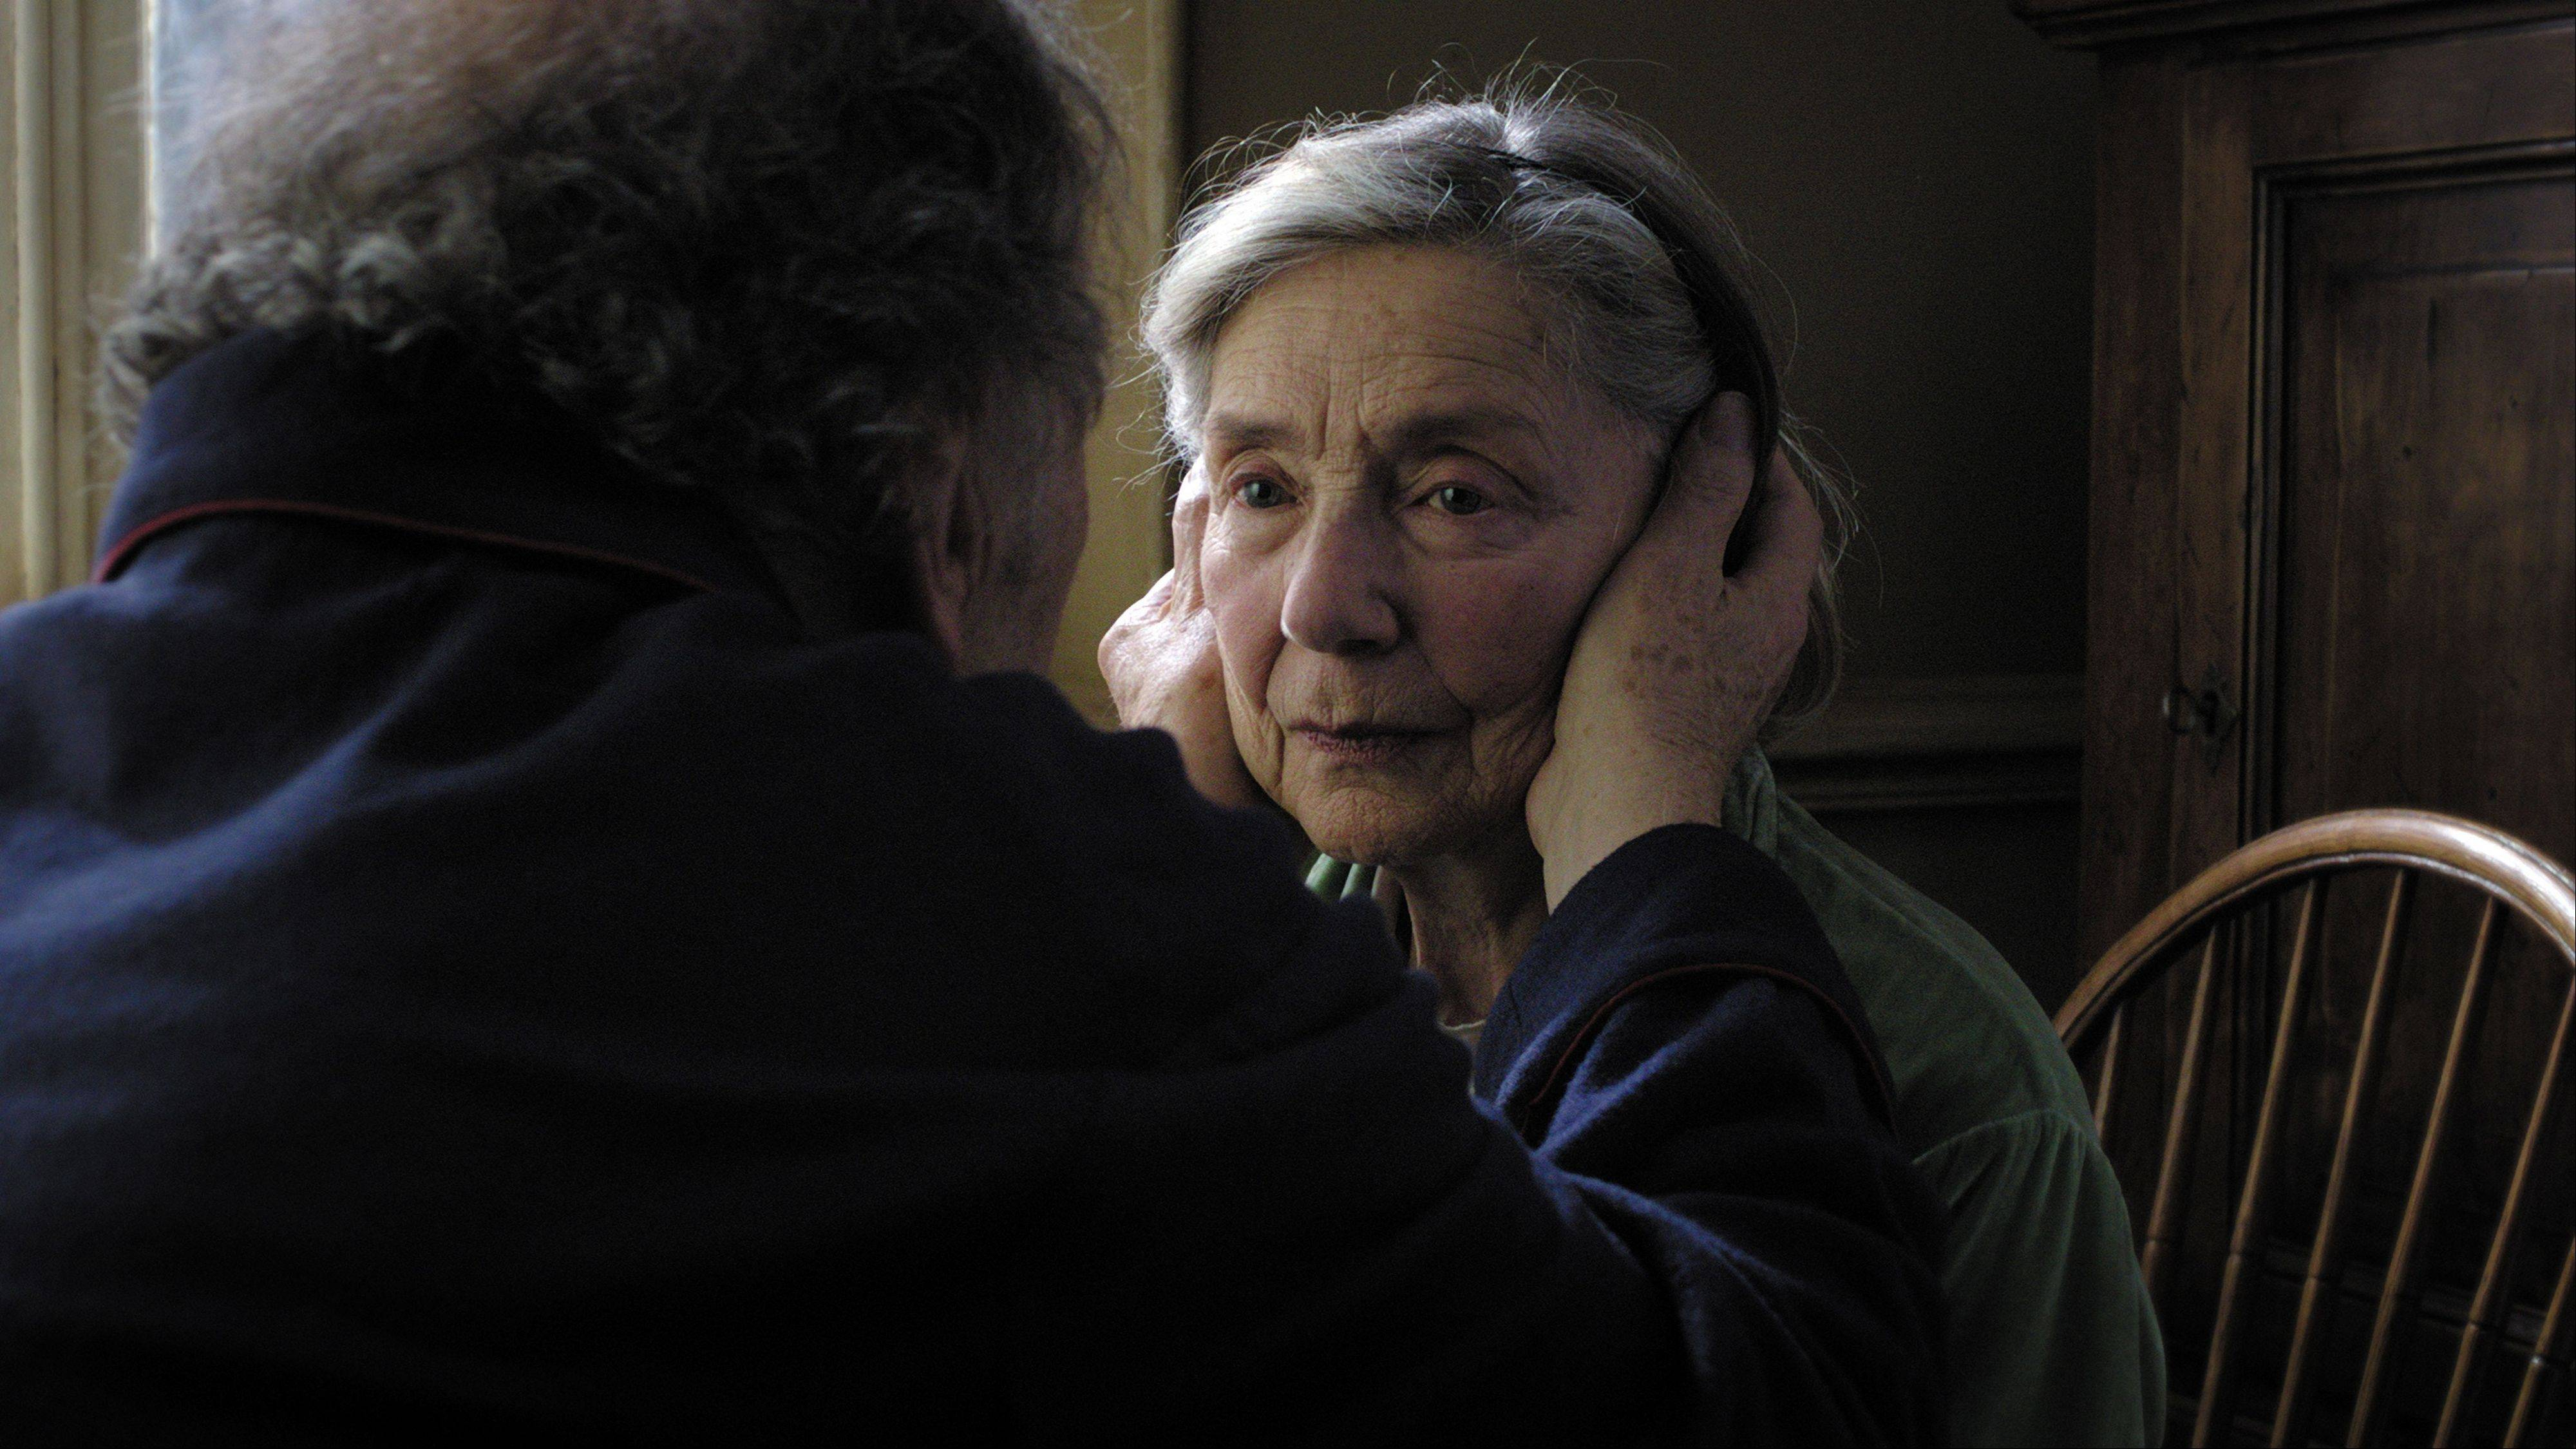 Emmanuelle Riva was nominated for an Academy Award for best actress for her role in �Amour,� which received five Oscar nominations, including best picture.